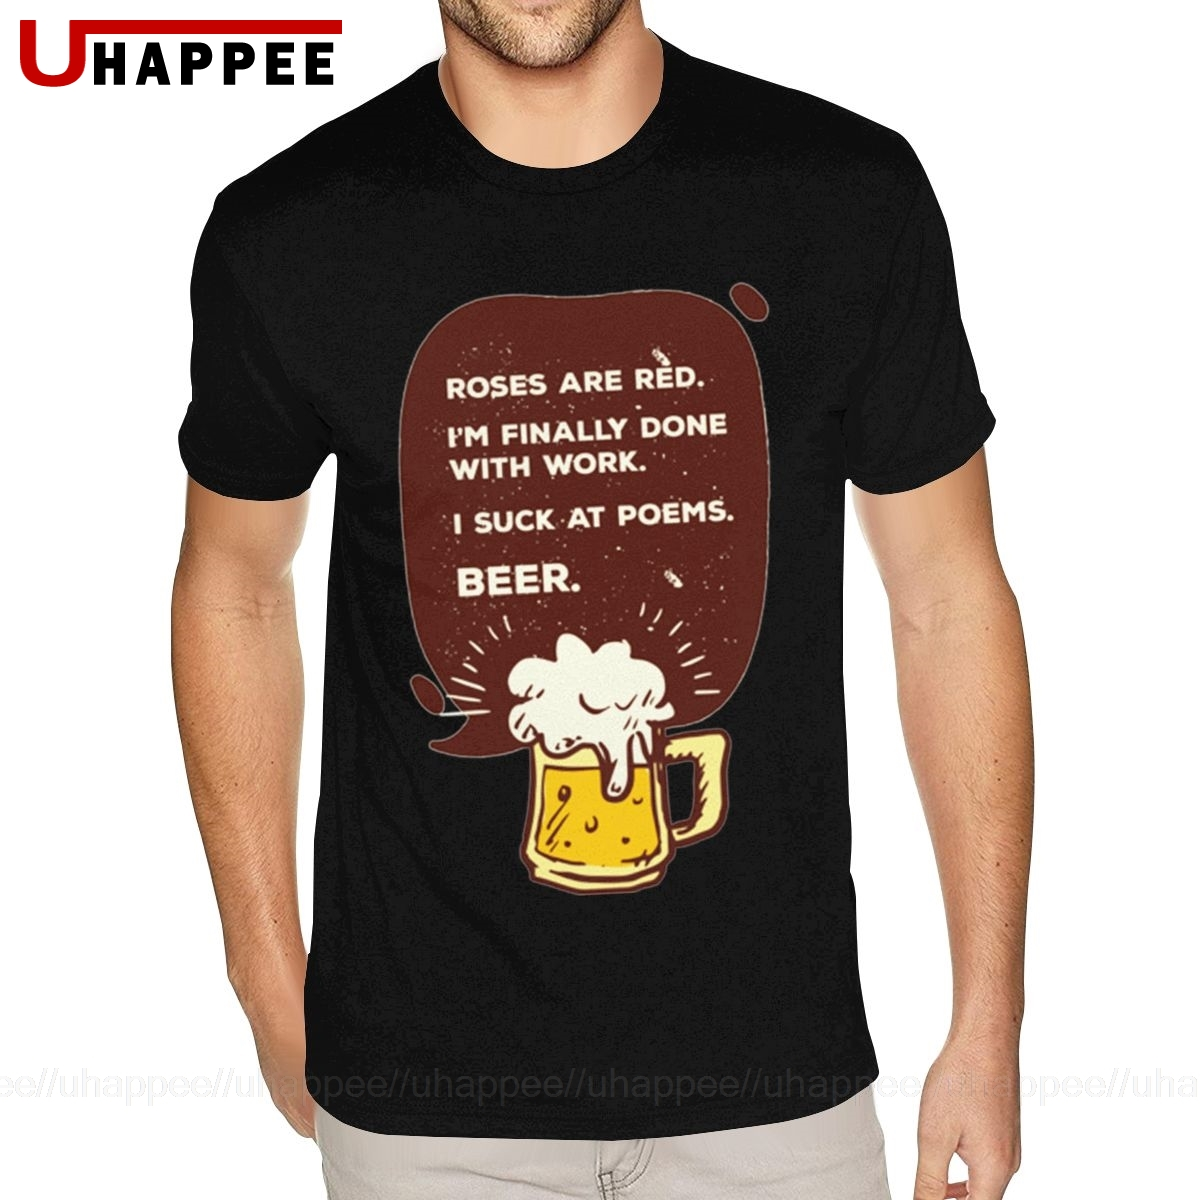 Tall Size Beer Poem T-Shirt for Men Hip Hop Brand Short Sleeve Mens Water Printed Shirt Cheap Discount Merch Apparel image